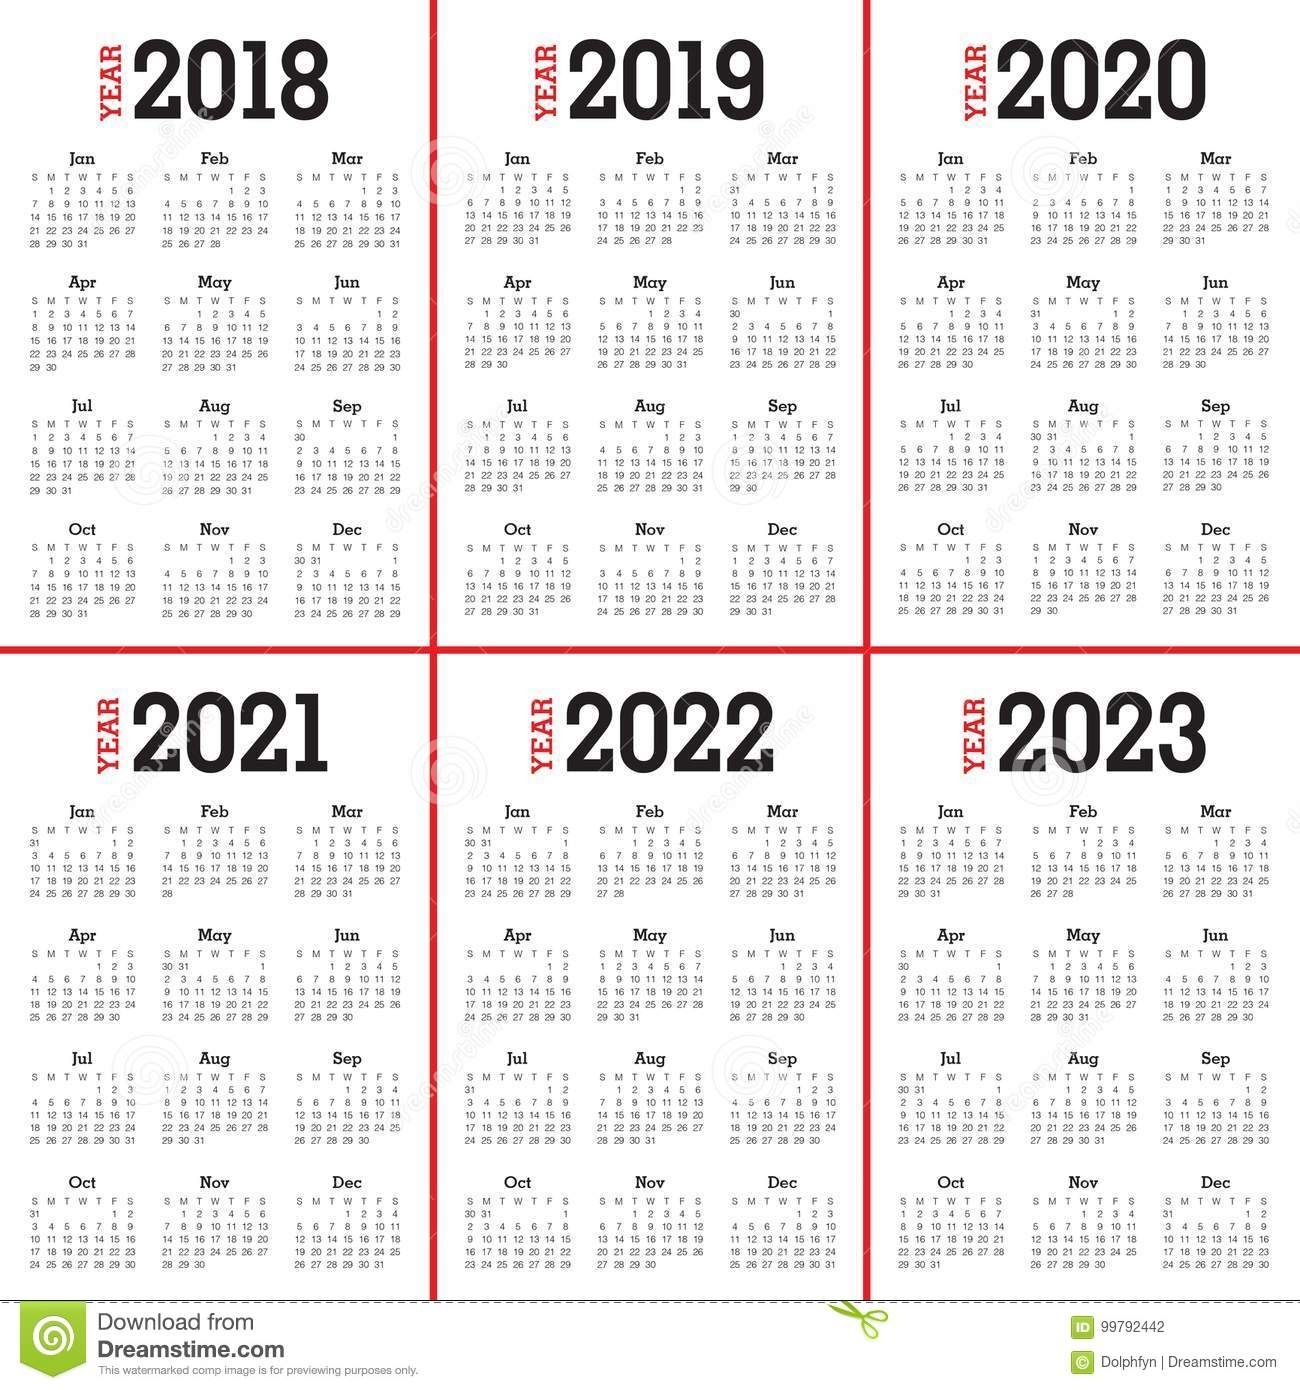 Year 2018 2019 2020 2021 2022 2023 Calendar Vector Stock Vector within Free Prinable Calenders 2020 To 2023